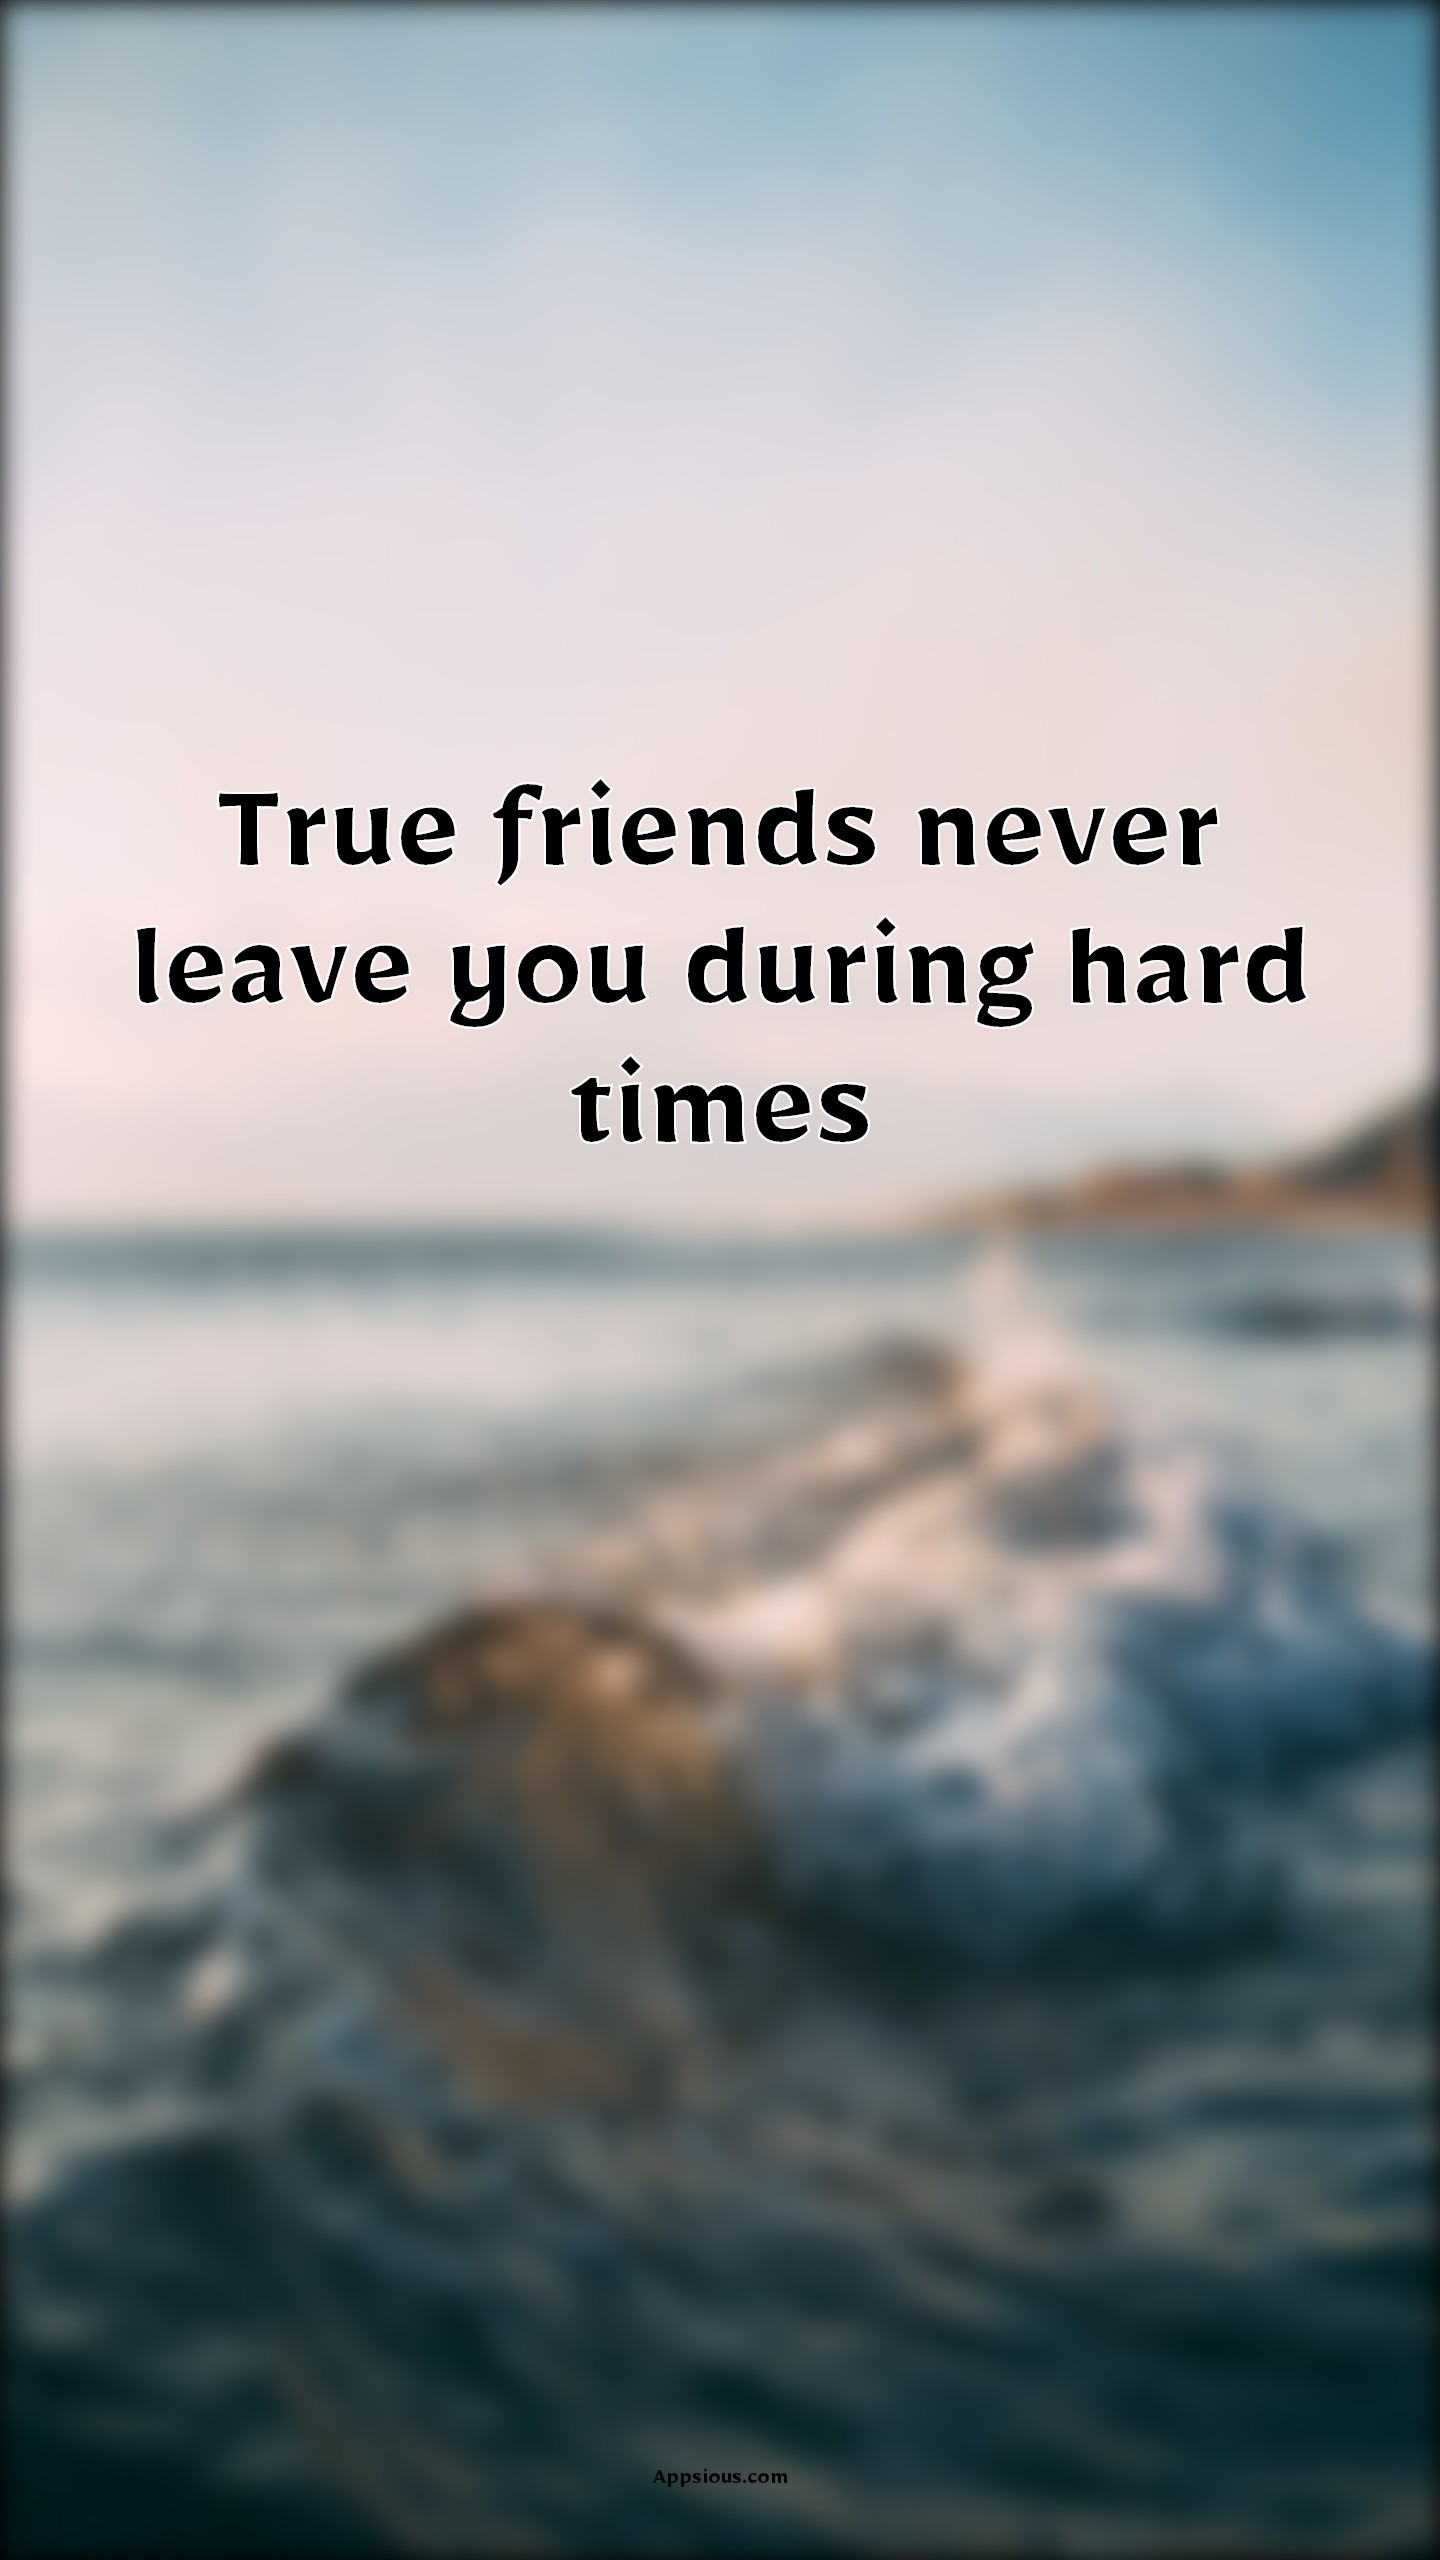 True friends never leave you during hard times